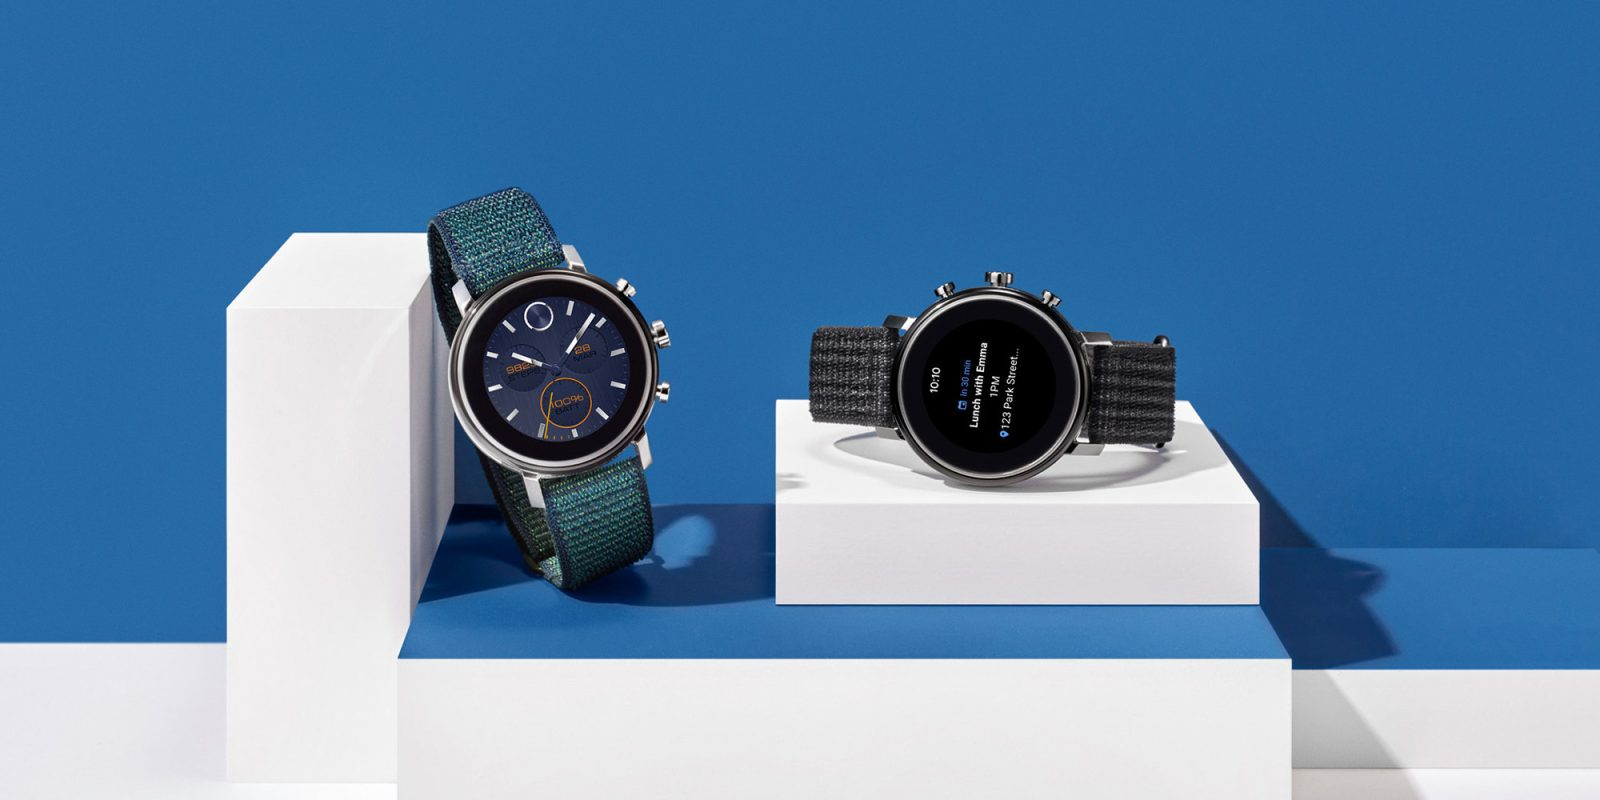 Movado Connect 2.0 Wear OS watch starts at $495 - 9to5Google